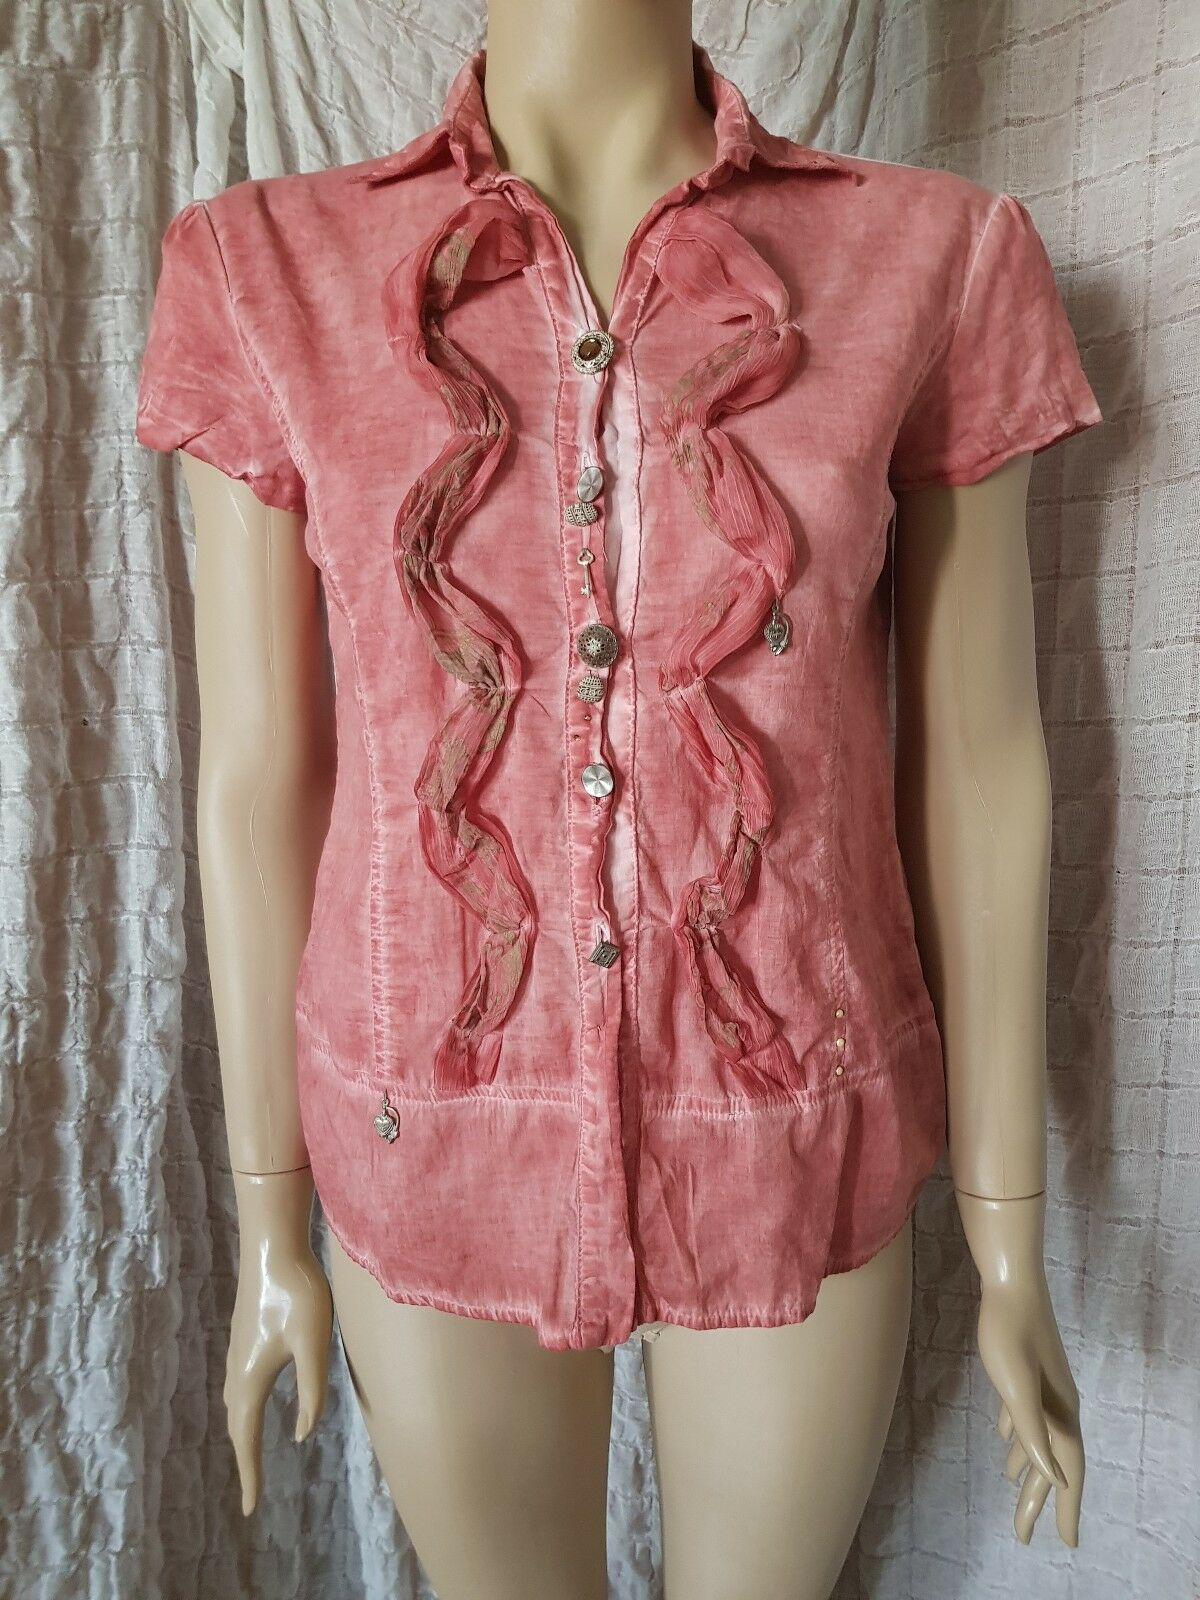 Elisa Cavaletti  short sleeve washed coral shirt with amazing details Größe M